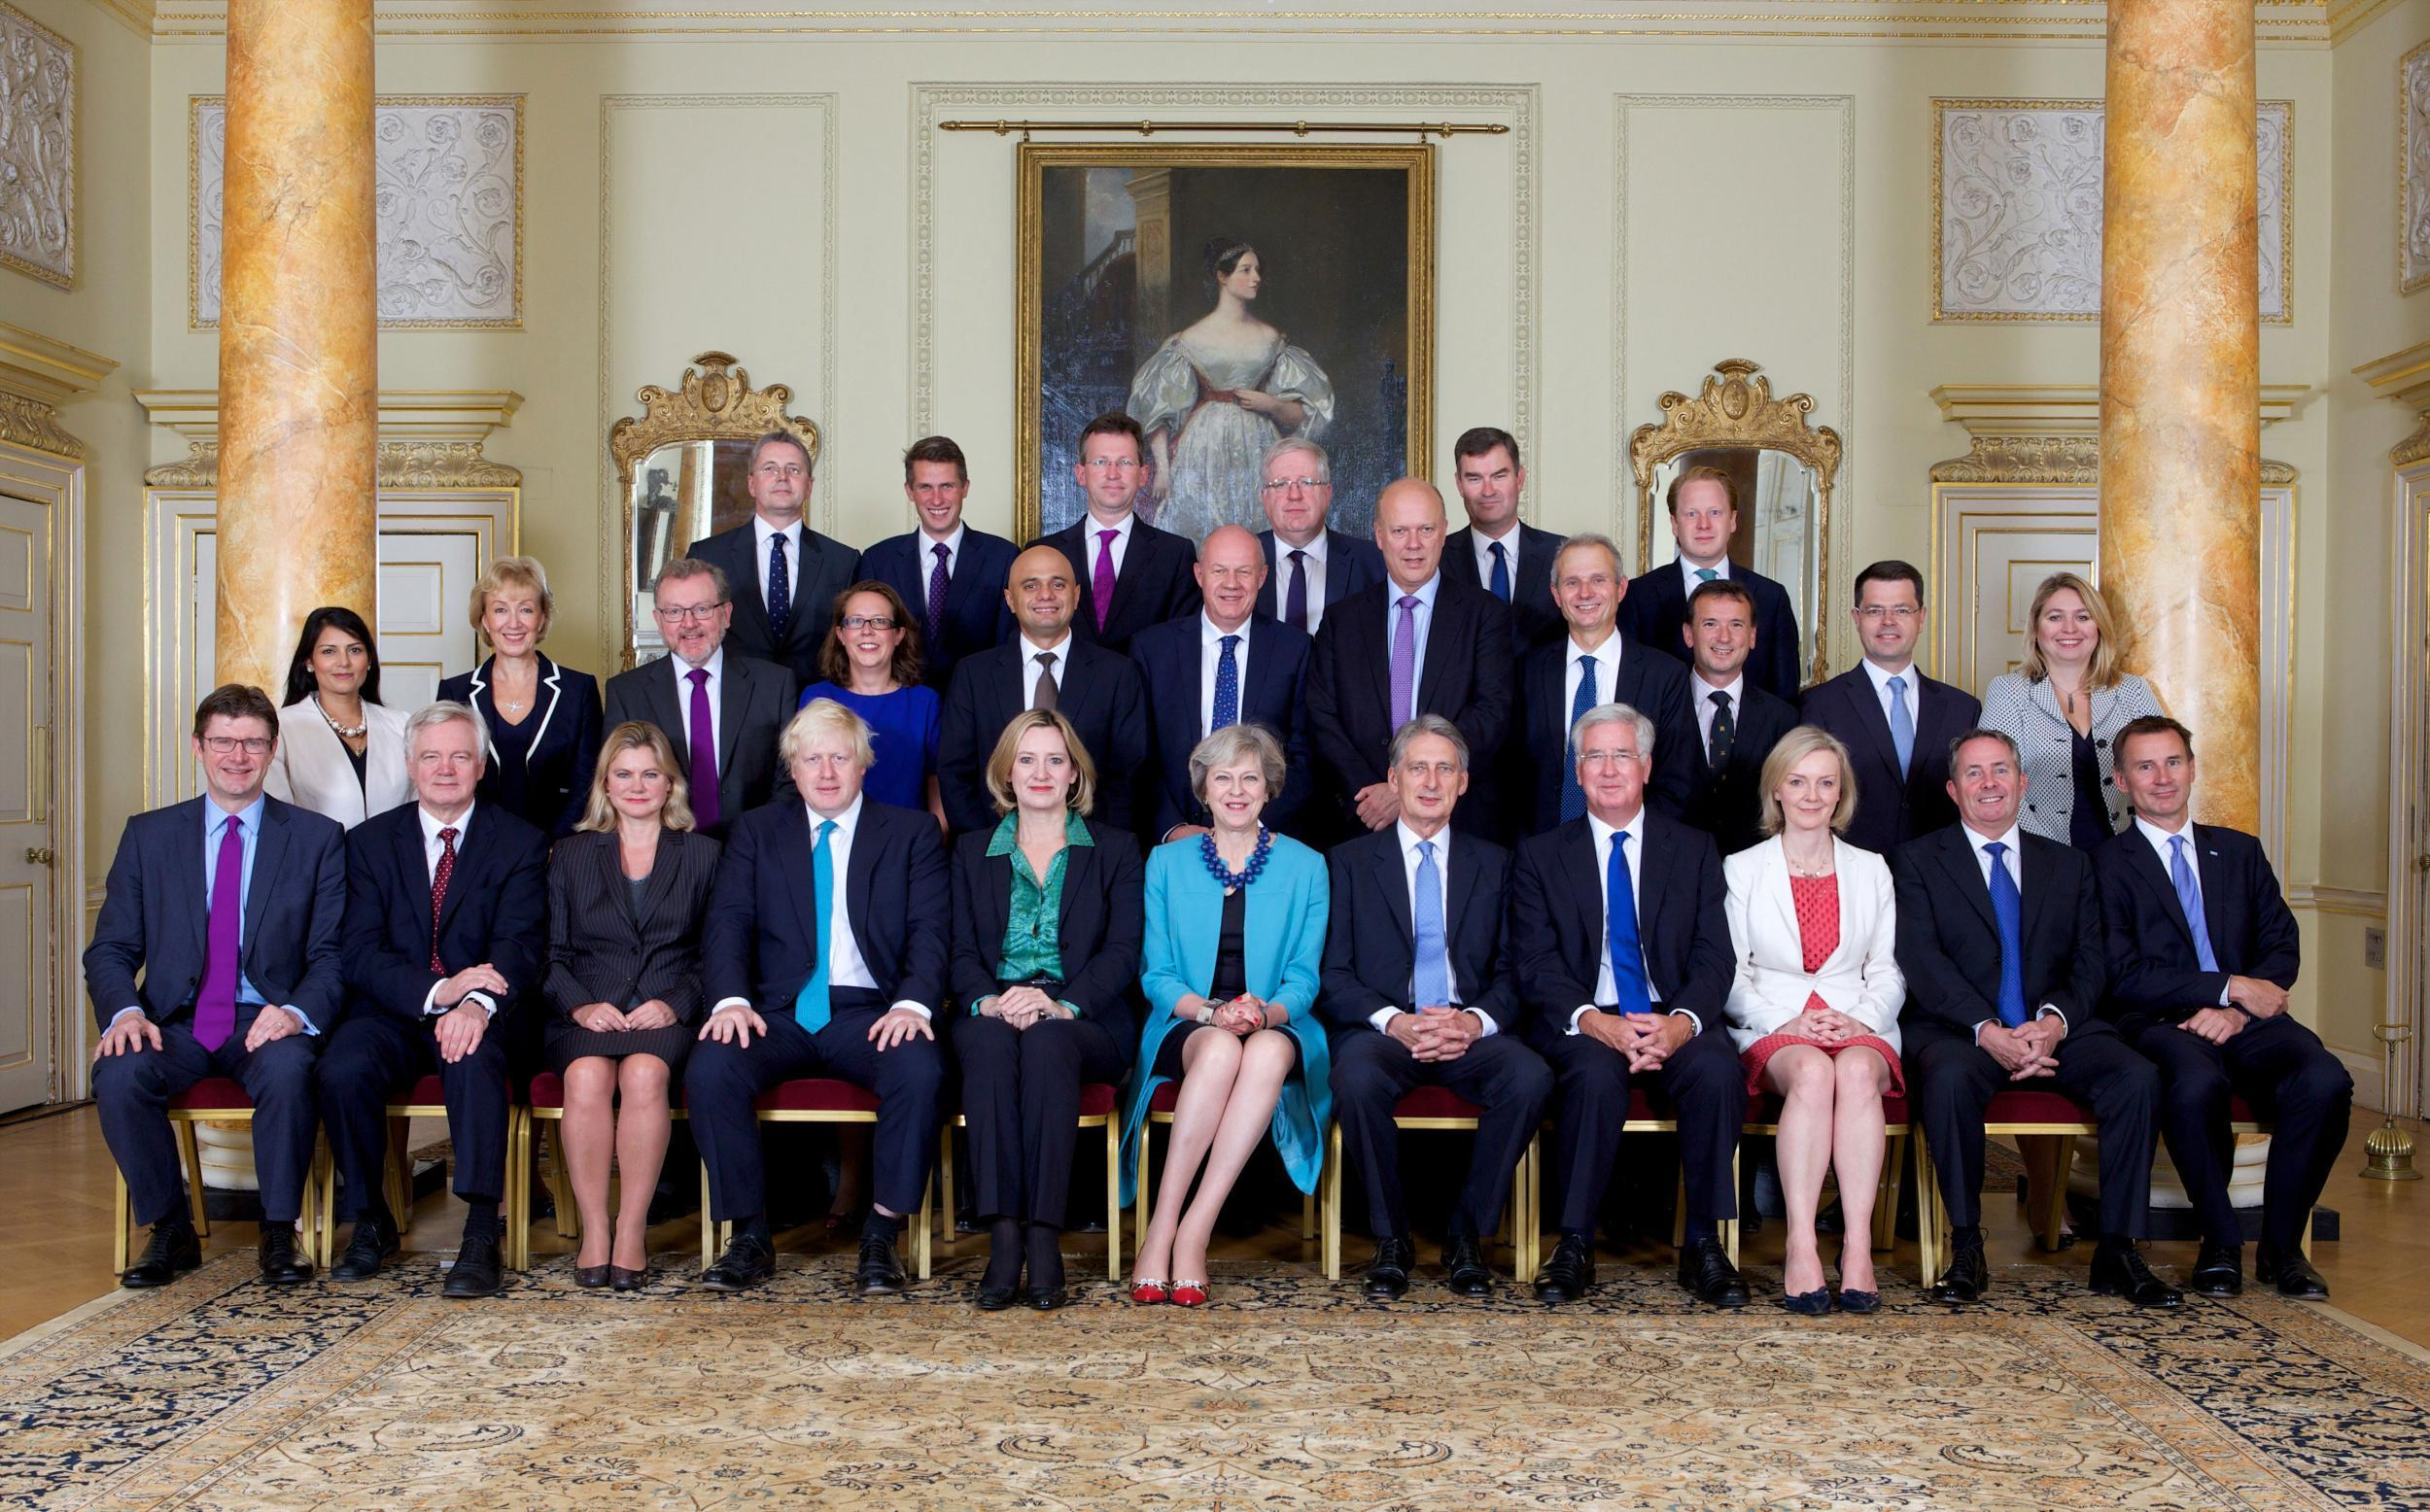 prime minister and the cabinet